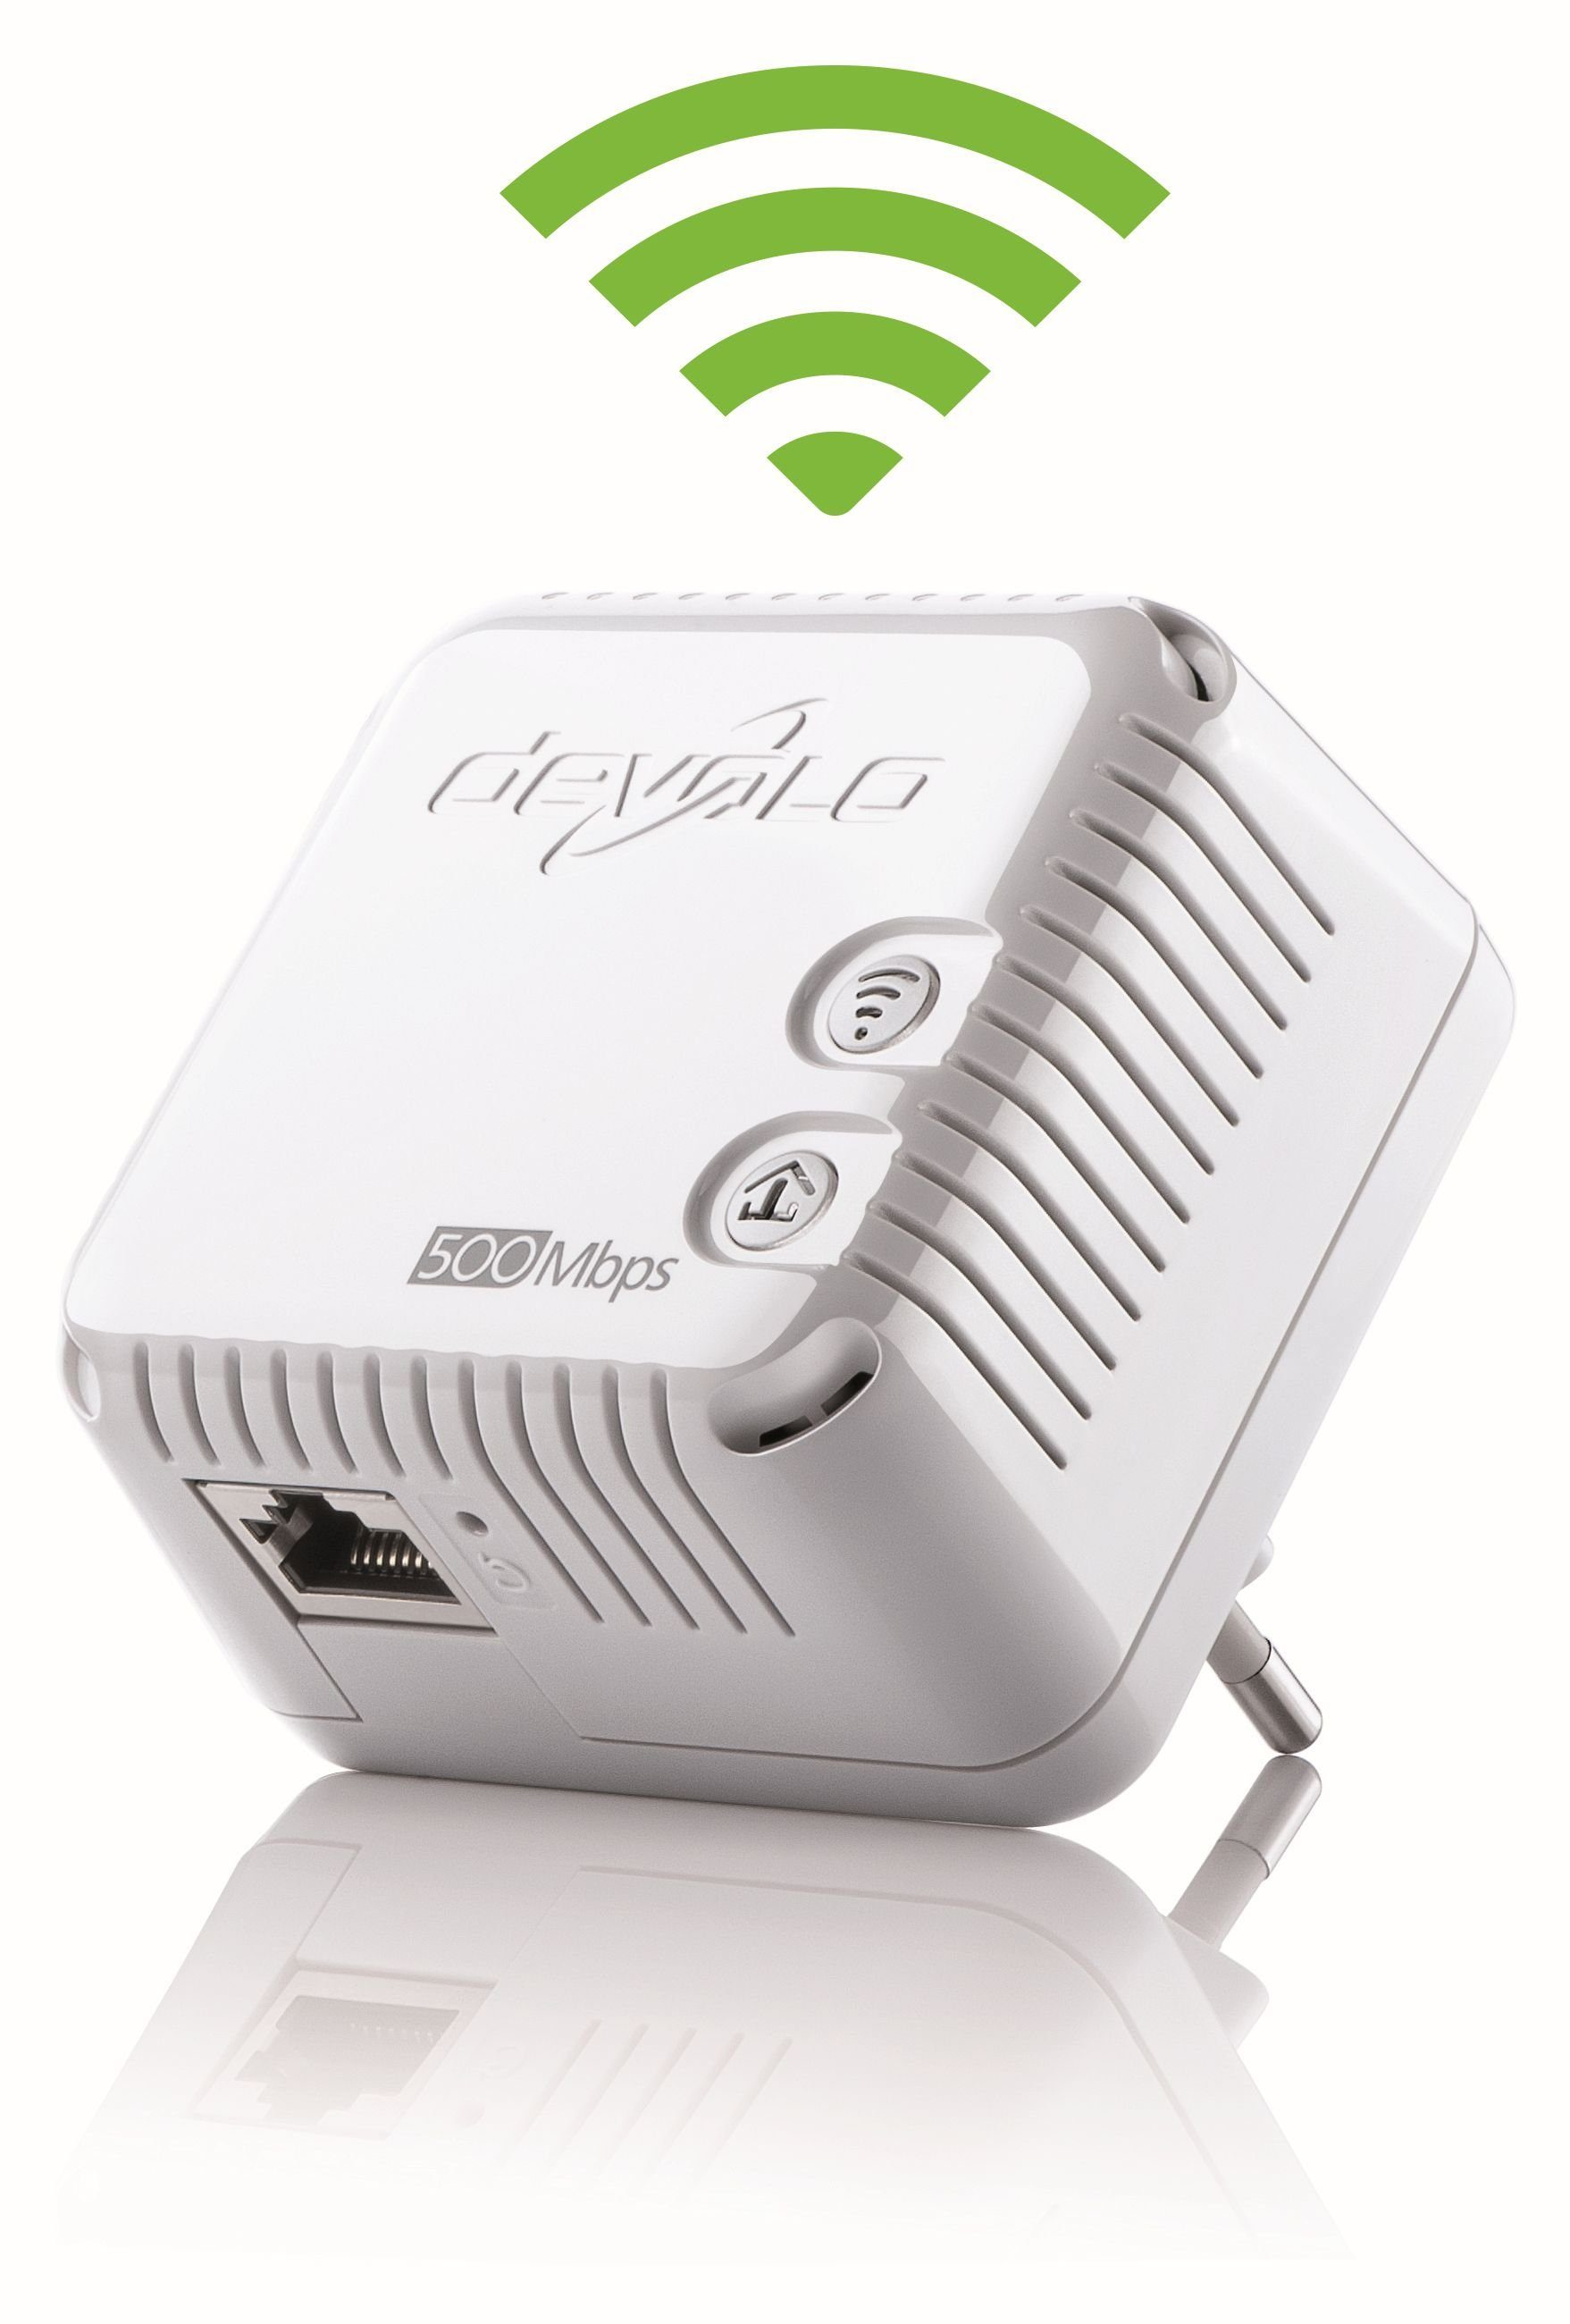 DEVOLO dLAN 500 WiFi »Powerline + WLAN 500Mbit, 1xLAN, WLAN Repeater«